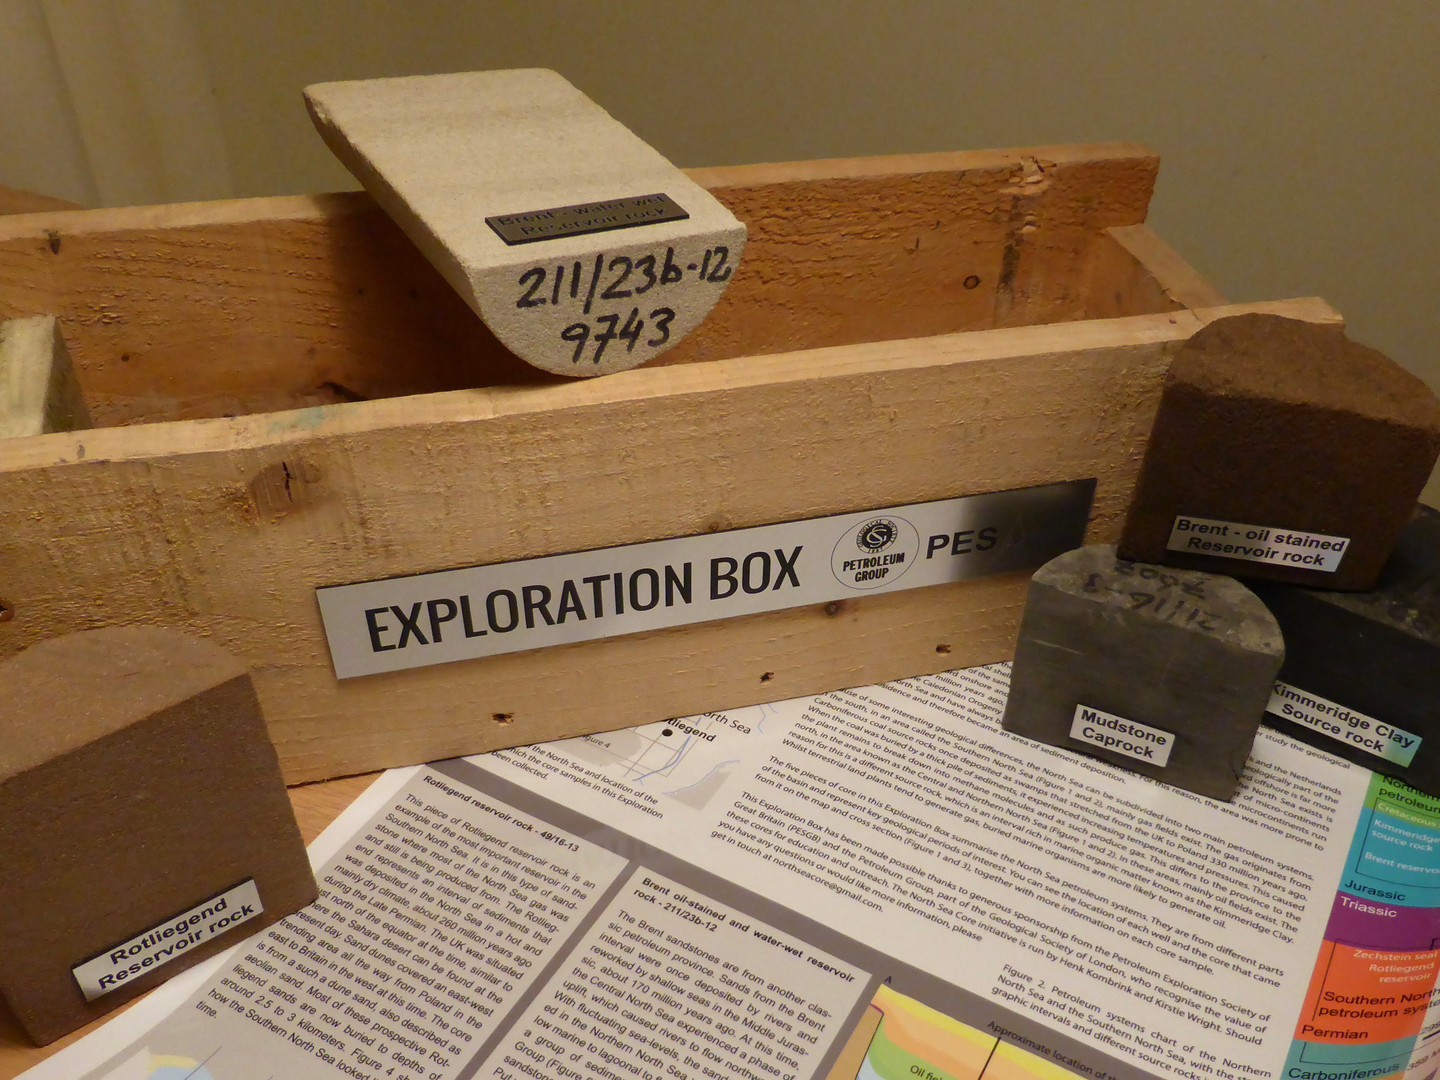 EXPLORATION BOXES